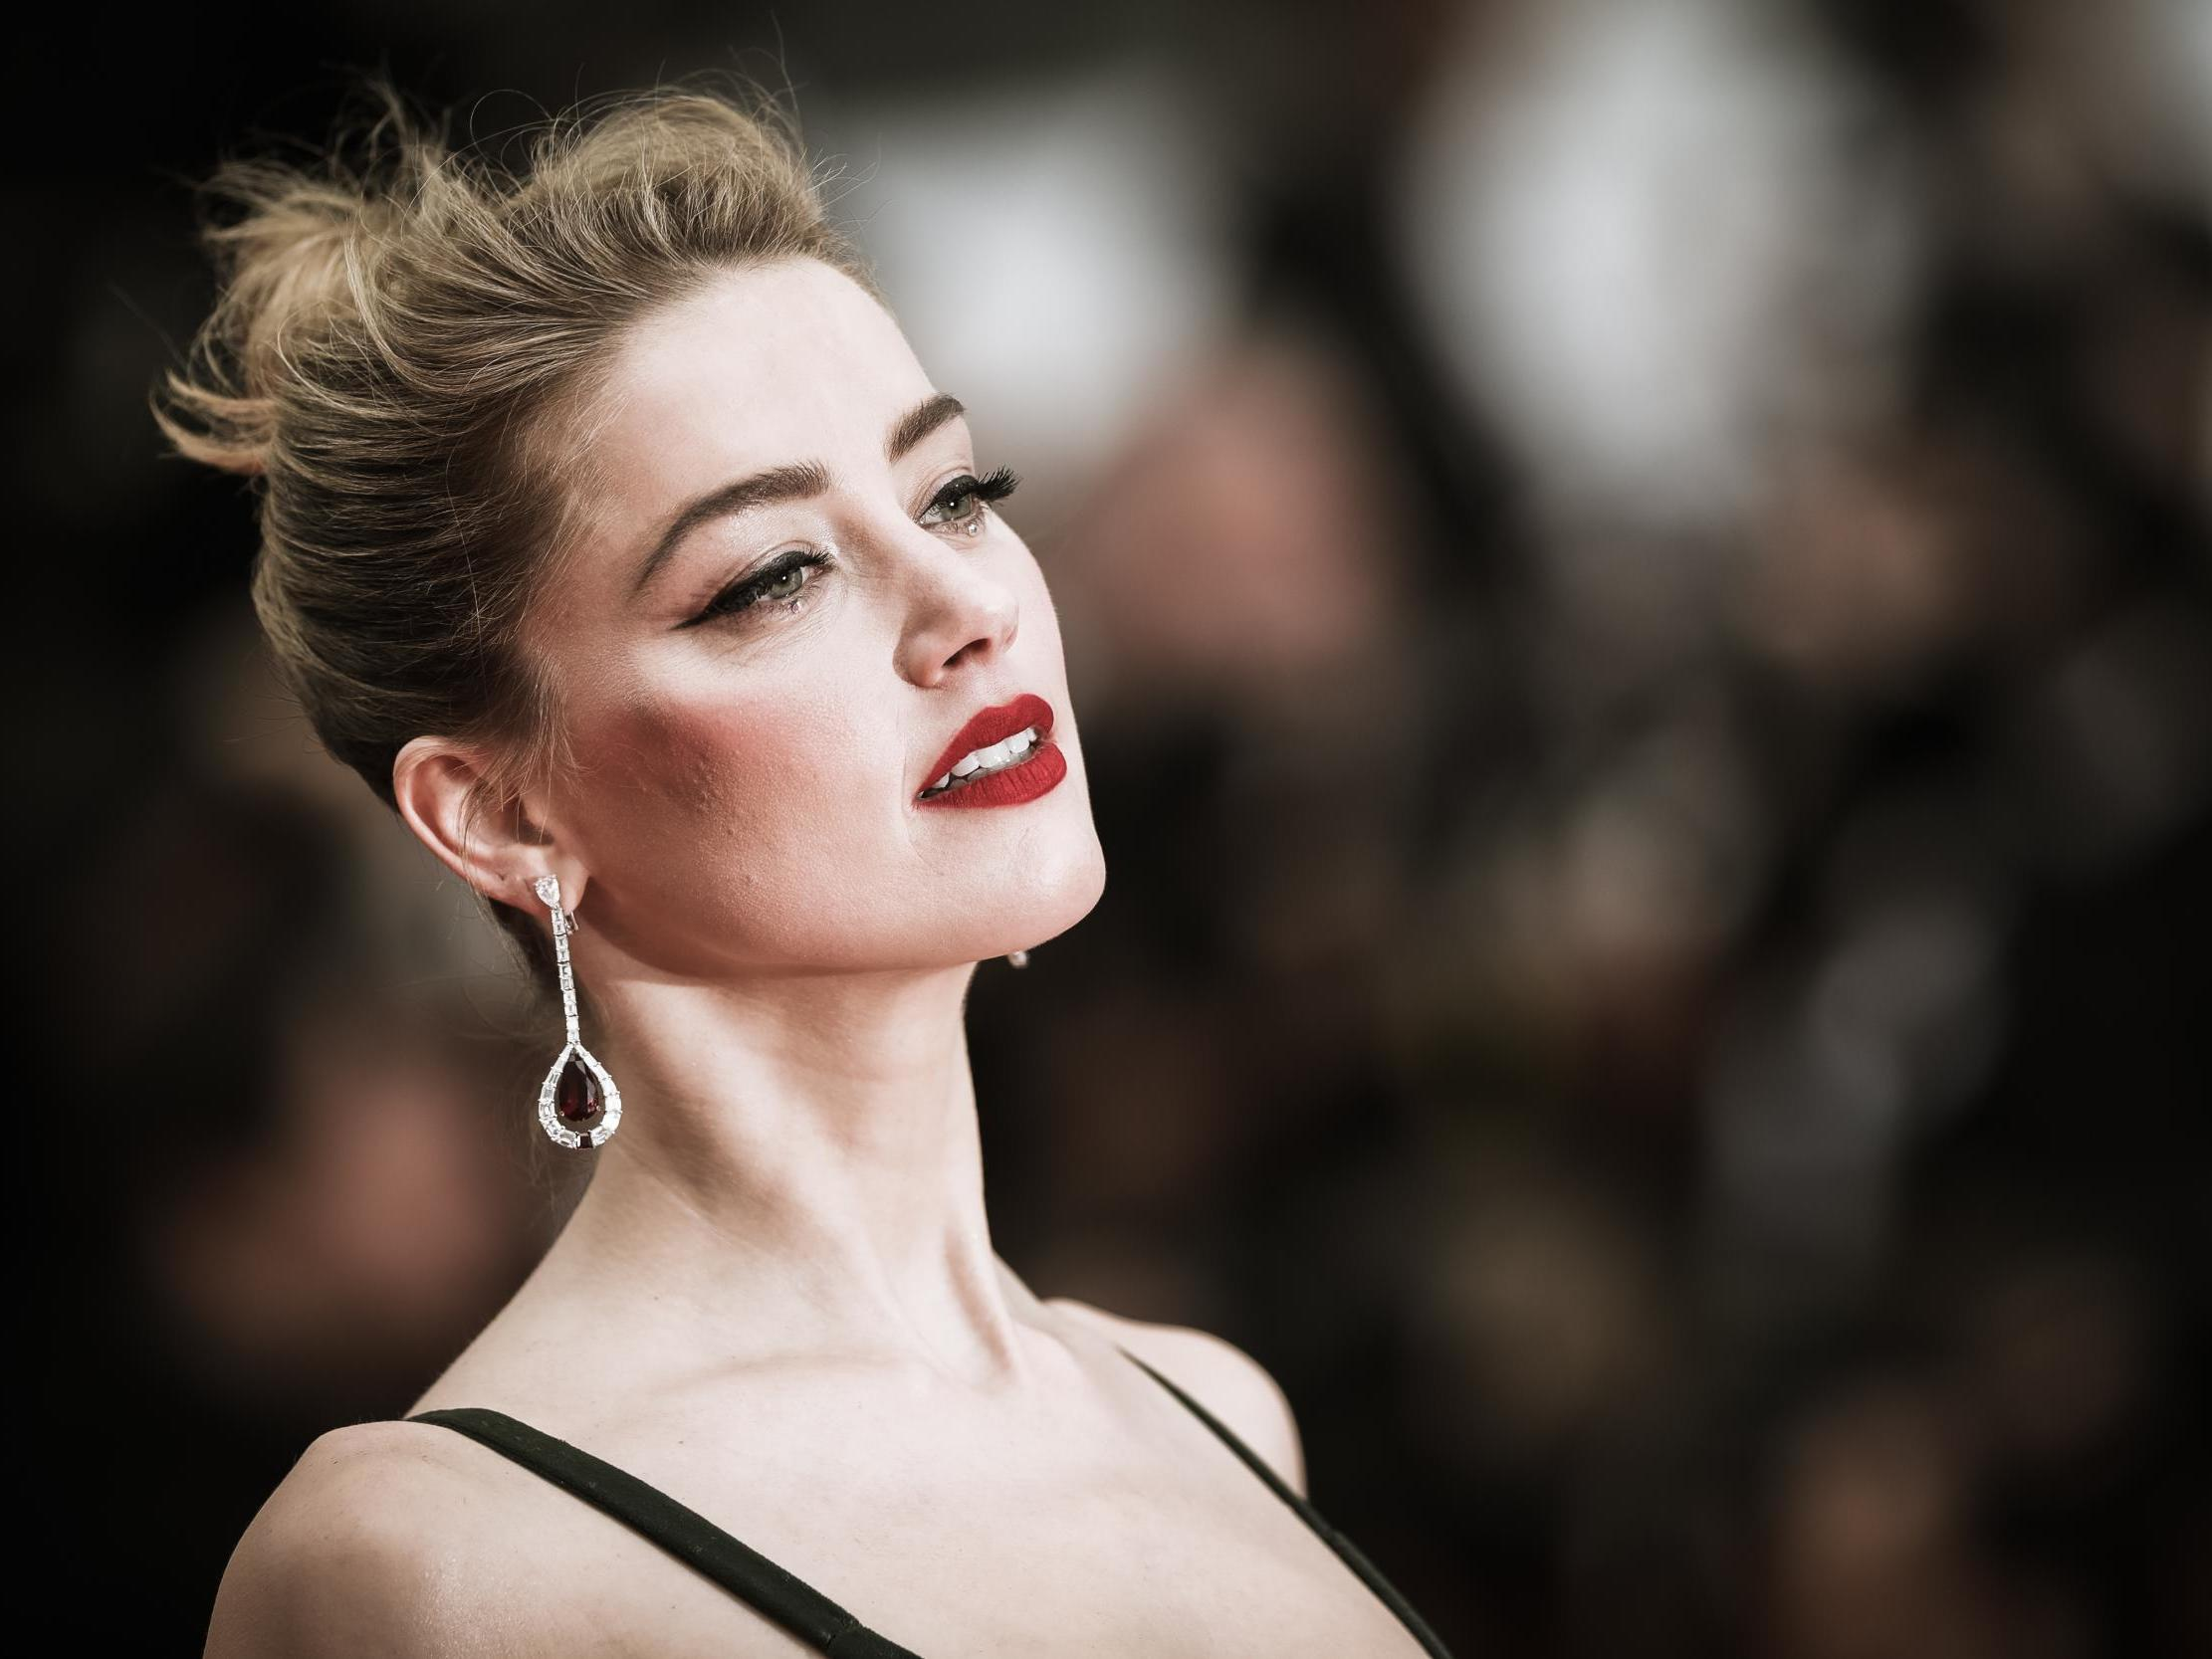 Amber Heard Porn Movie amber heard - latest news, breaking stories and comment